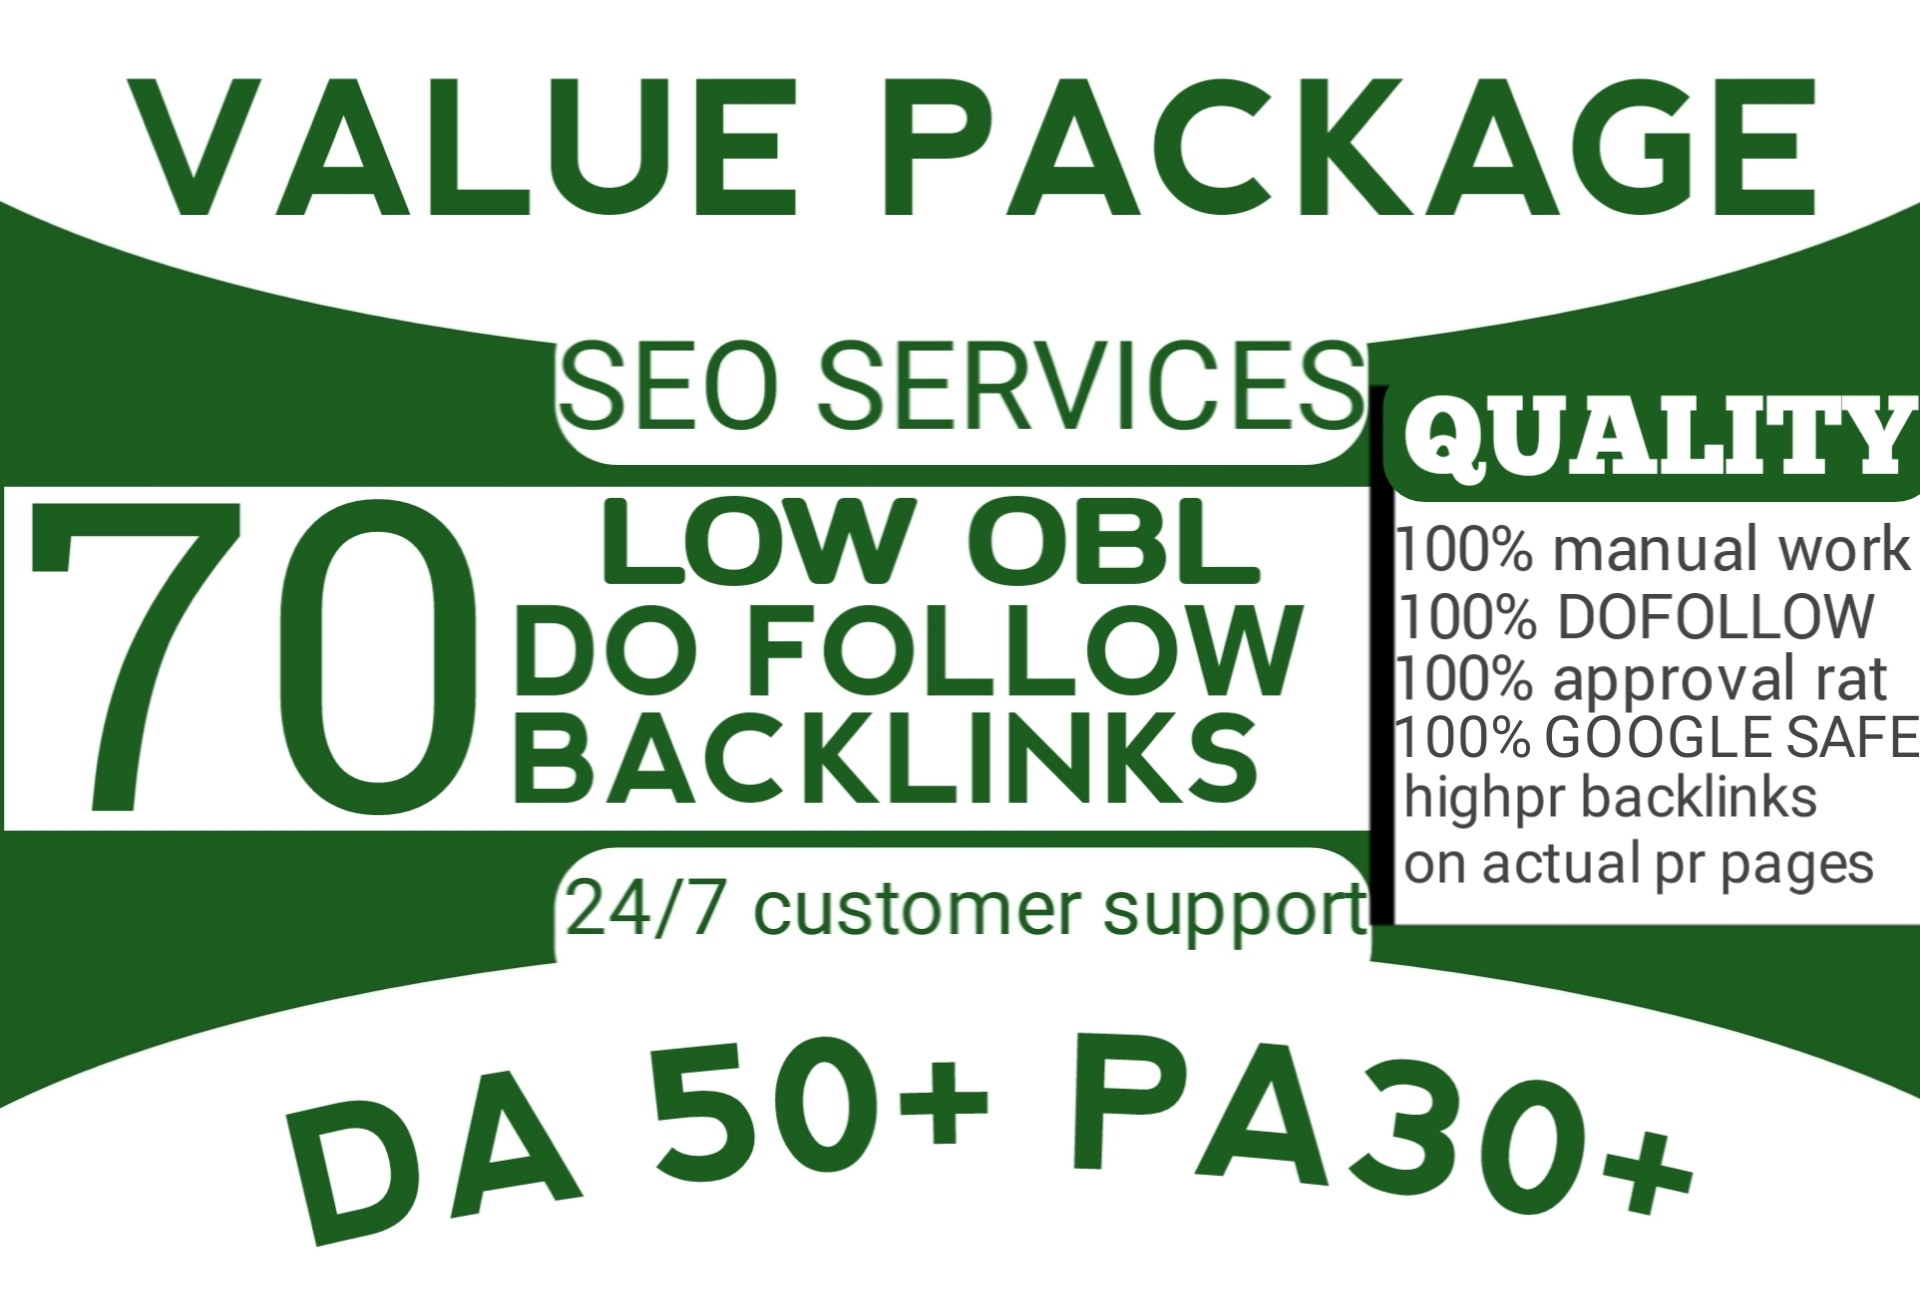 will provide 70 links of DA 50+ with unique domains and low obl